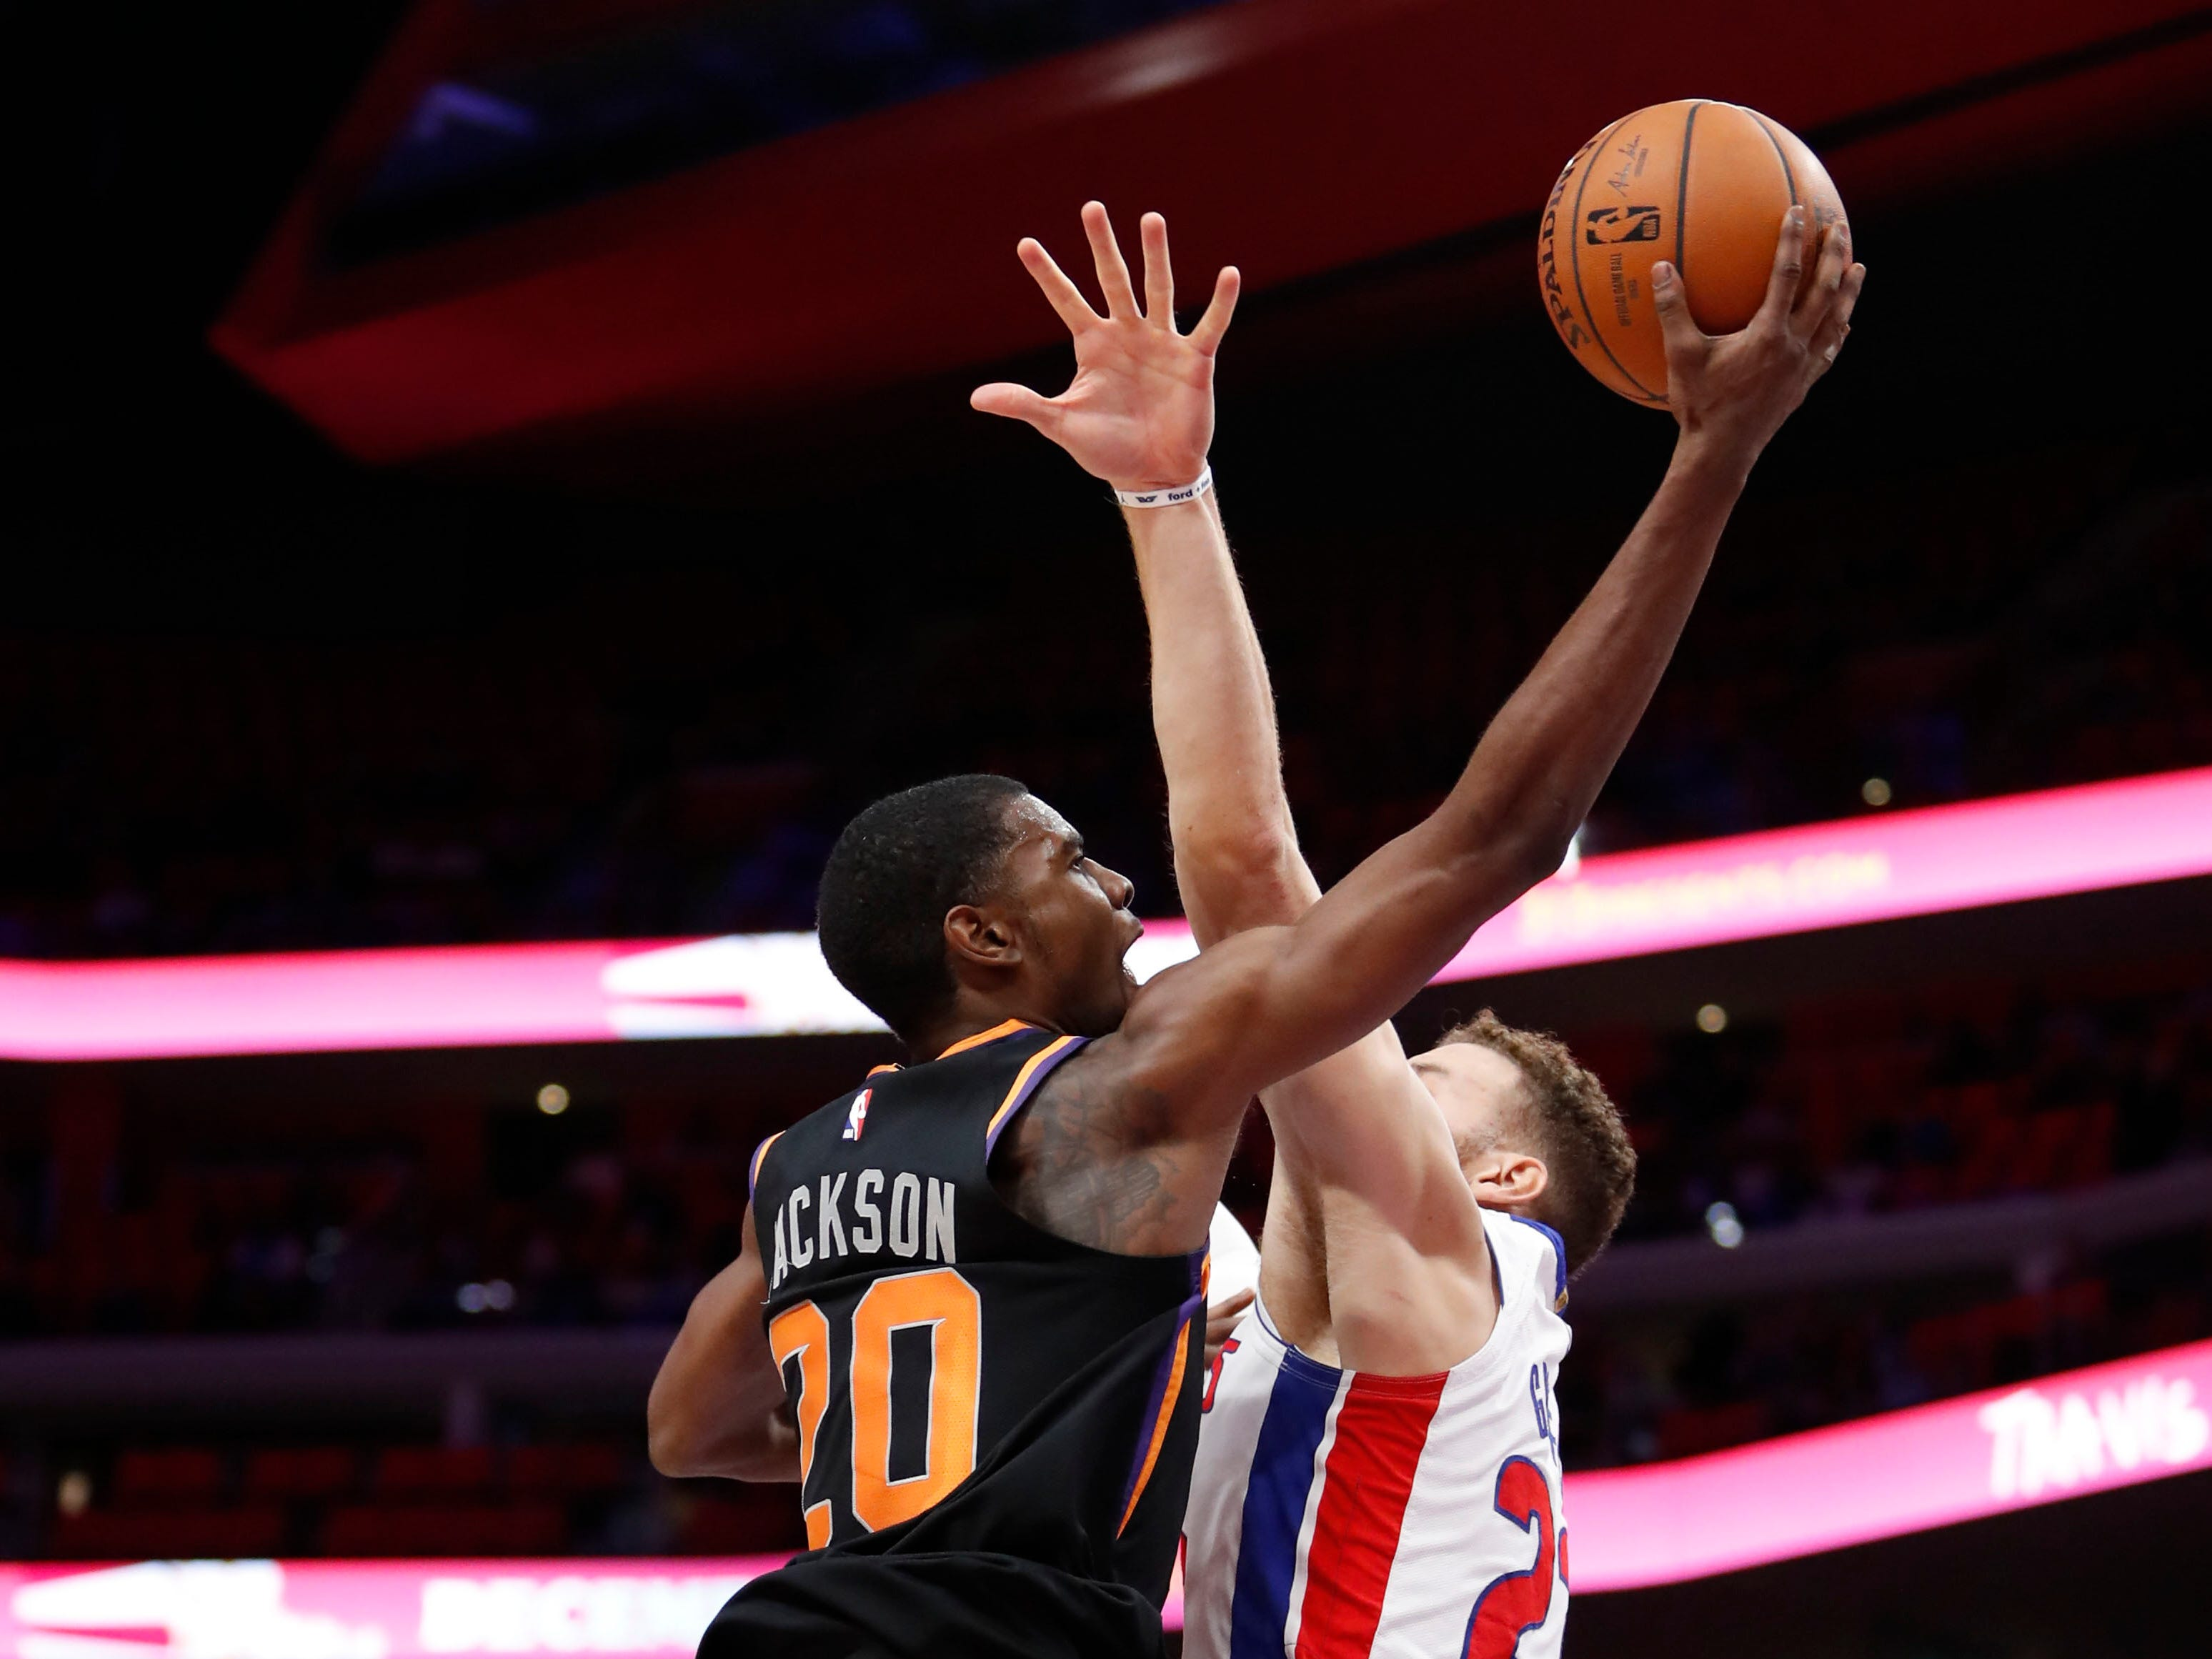 Nov 25, 2018; Detroit, MI, USA; Phoenix Suns forward Josh Jackson (20) goes up for a shot against Detroit Pistons forward Blake Griffin (23) during the fourth quarter at Little Caesars Arena. Mandatory Credit: Raj Mehta-USA TODAY Sports